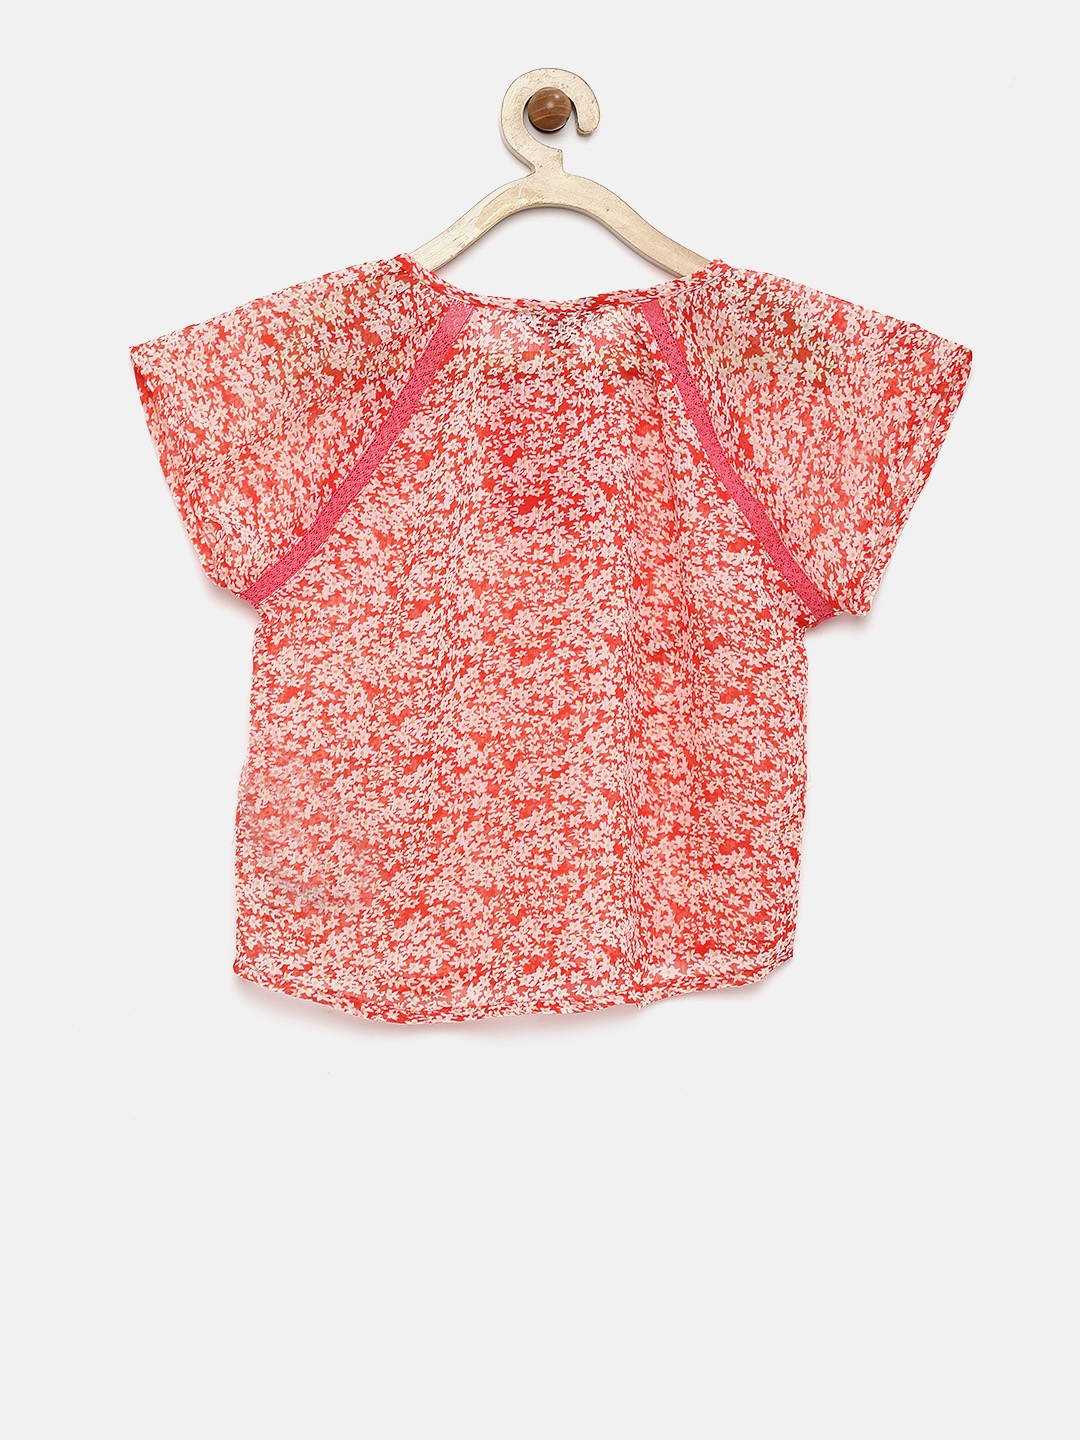 749d421acc1 Buy Tommy Hilfiger Girls Coral Red & White Floral Print Top - Tops ...